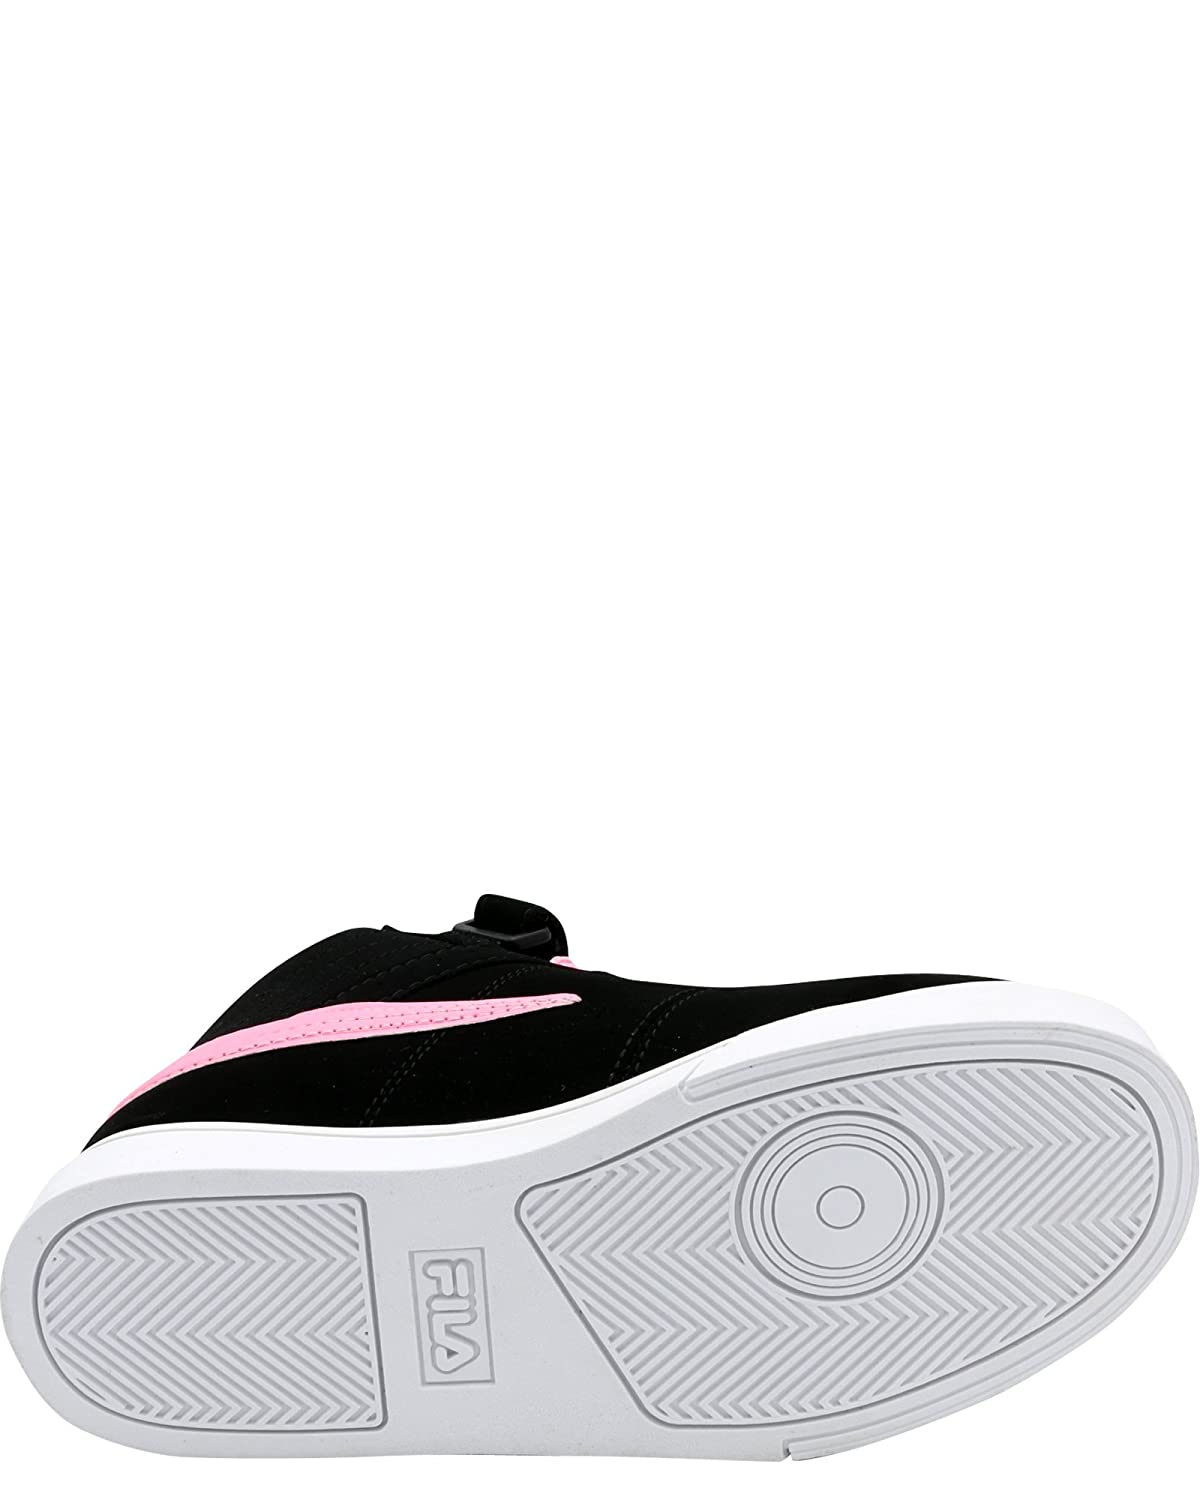 Big Kid ,Black//Pink,7 Fila Girls Vulc 13 Mid Plus Sneaker